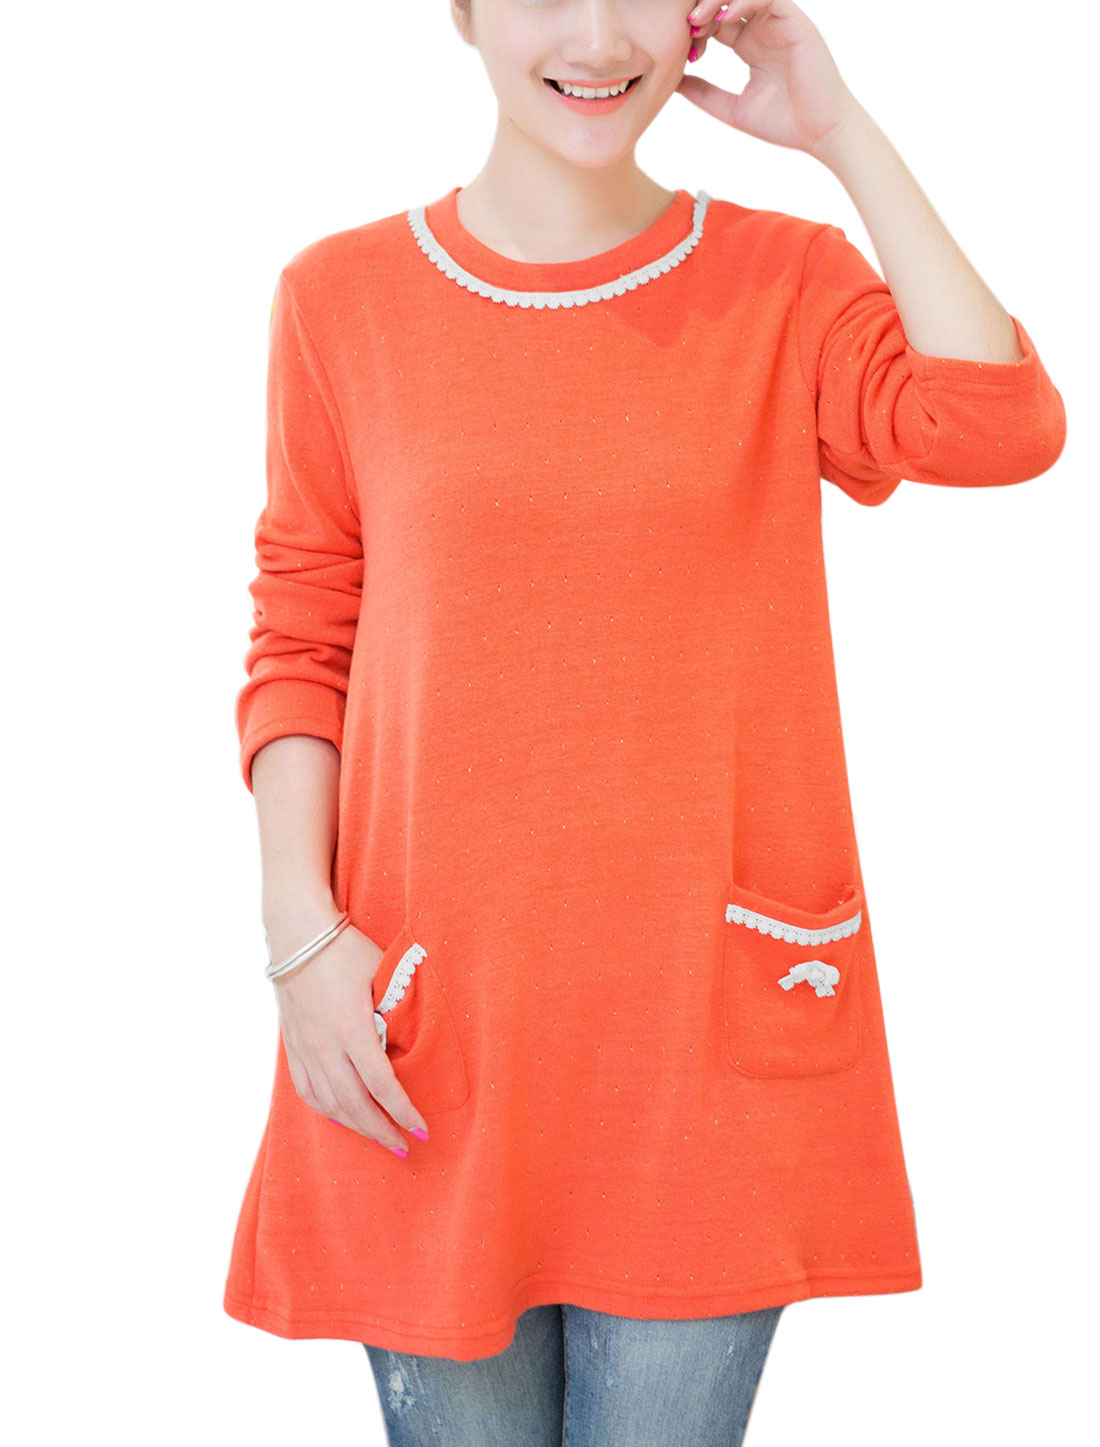 Maternity Applique Detail Two Vertical Pockets Front Casual Knit Top Orange Red S